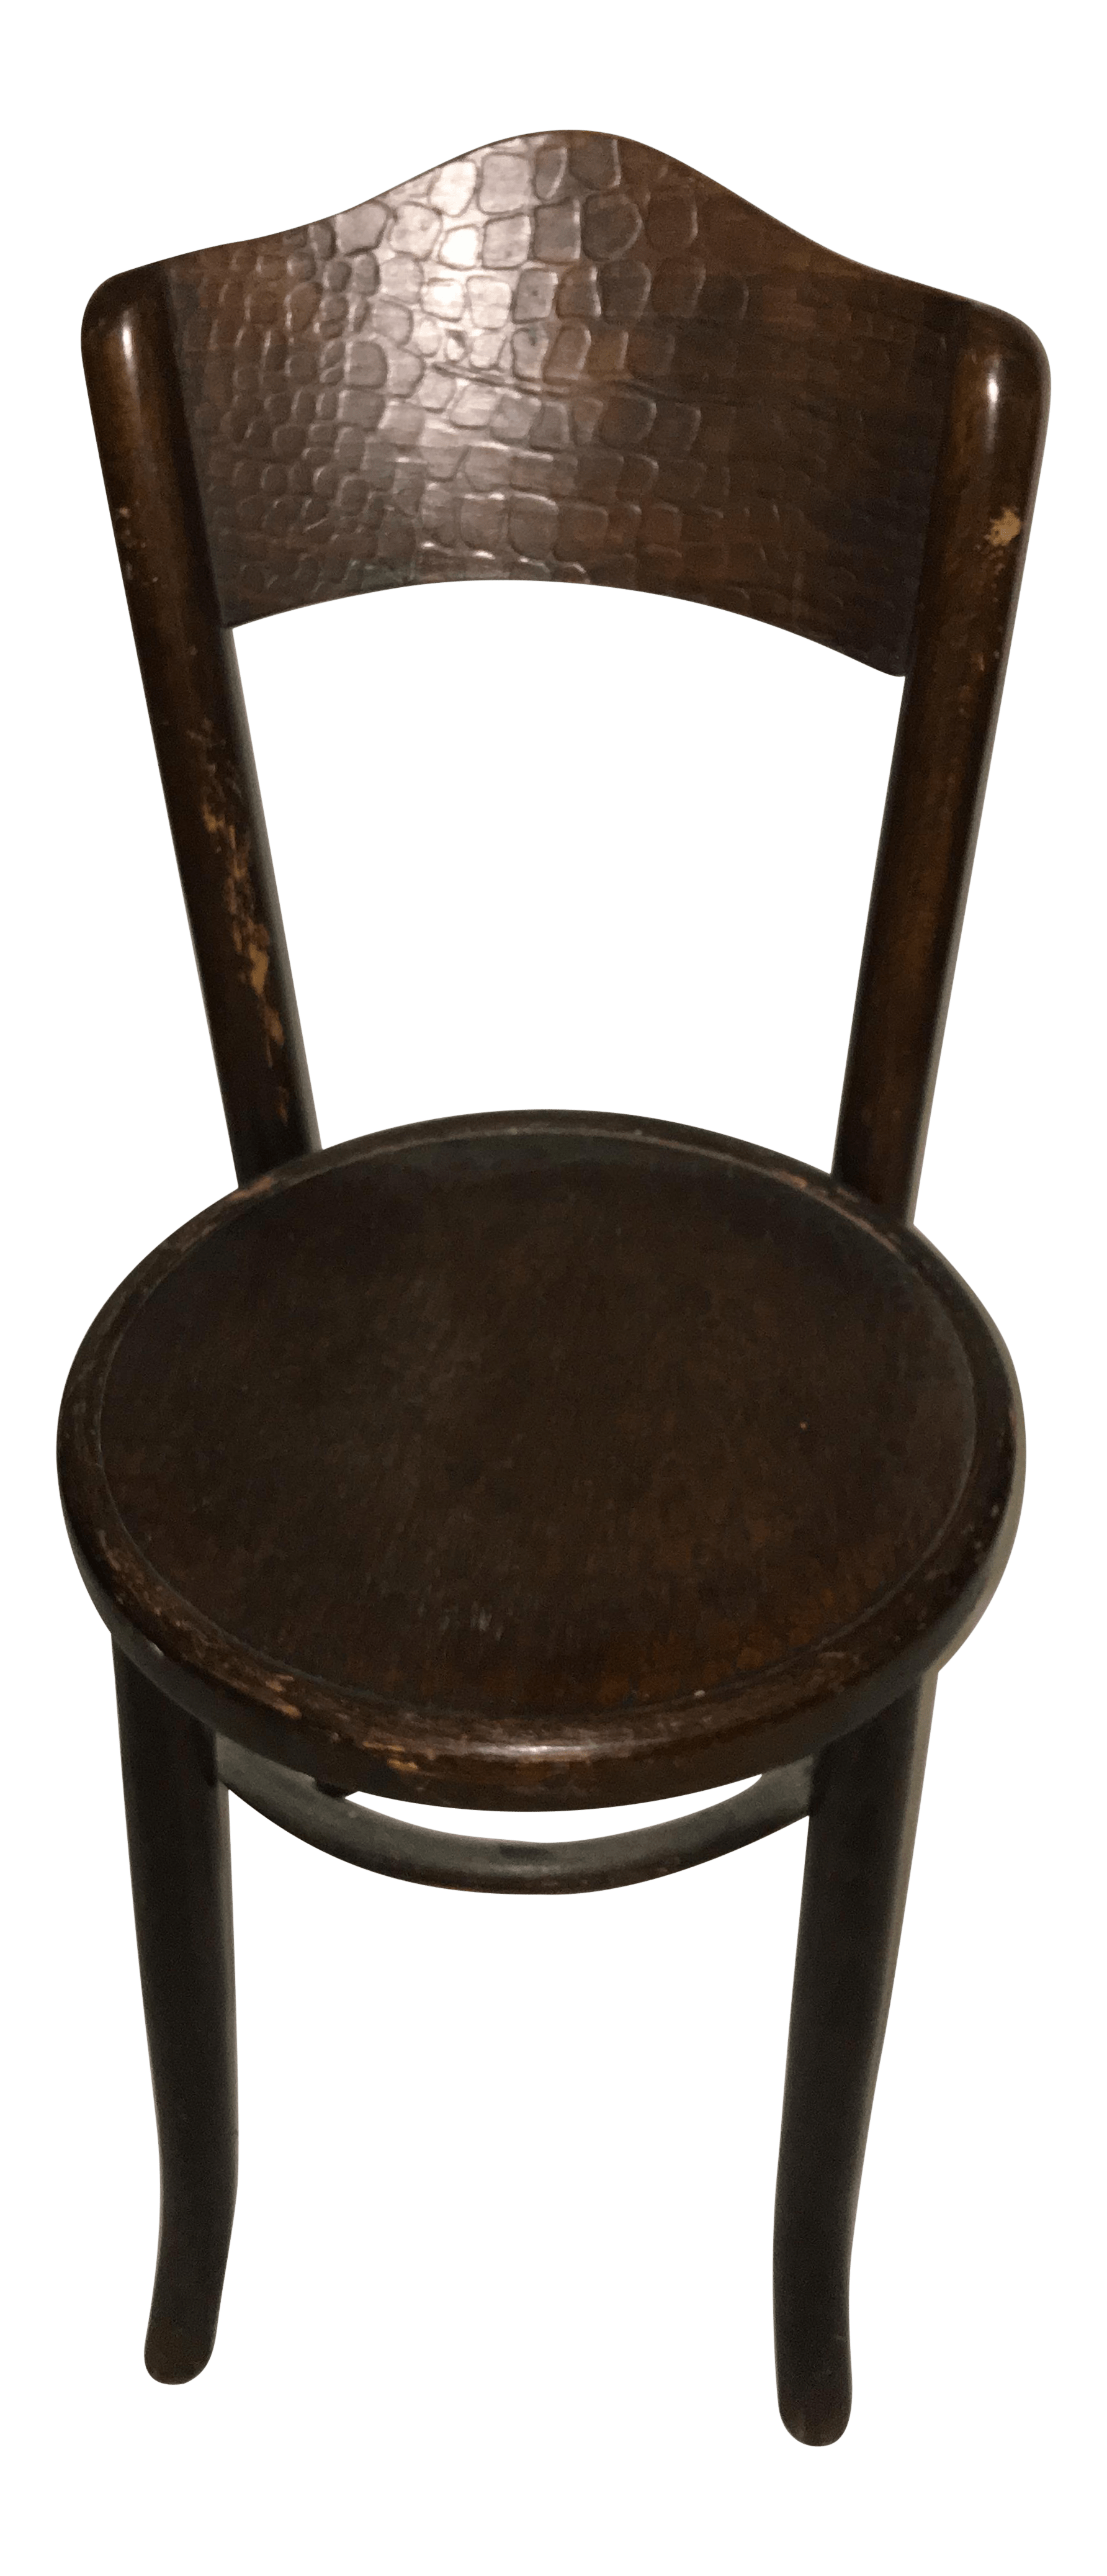 krueger folding chairs beach on sale vintage & used accent | chairish